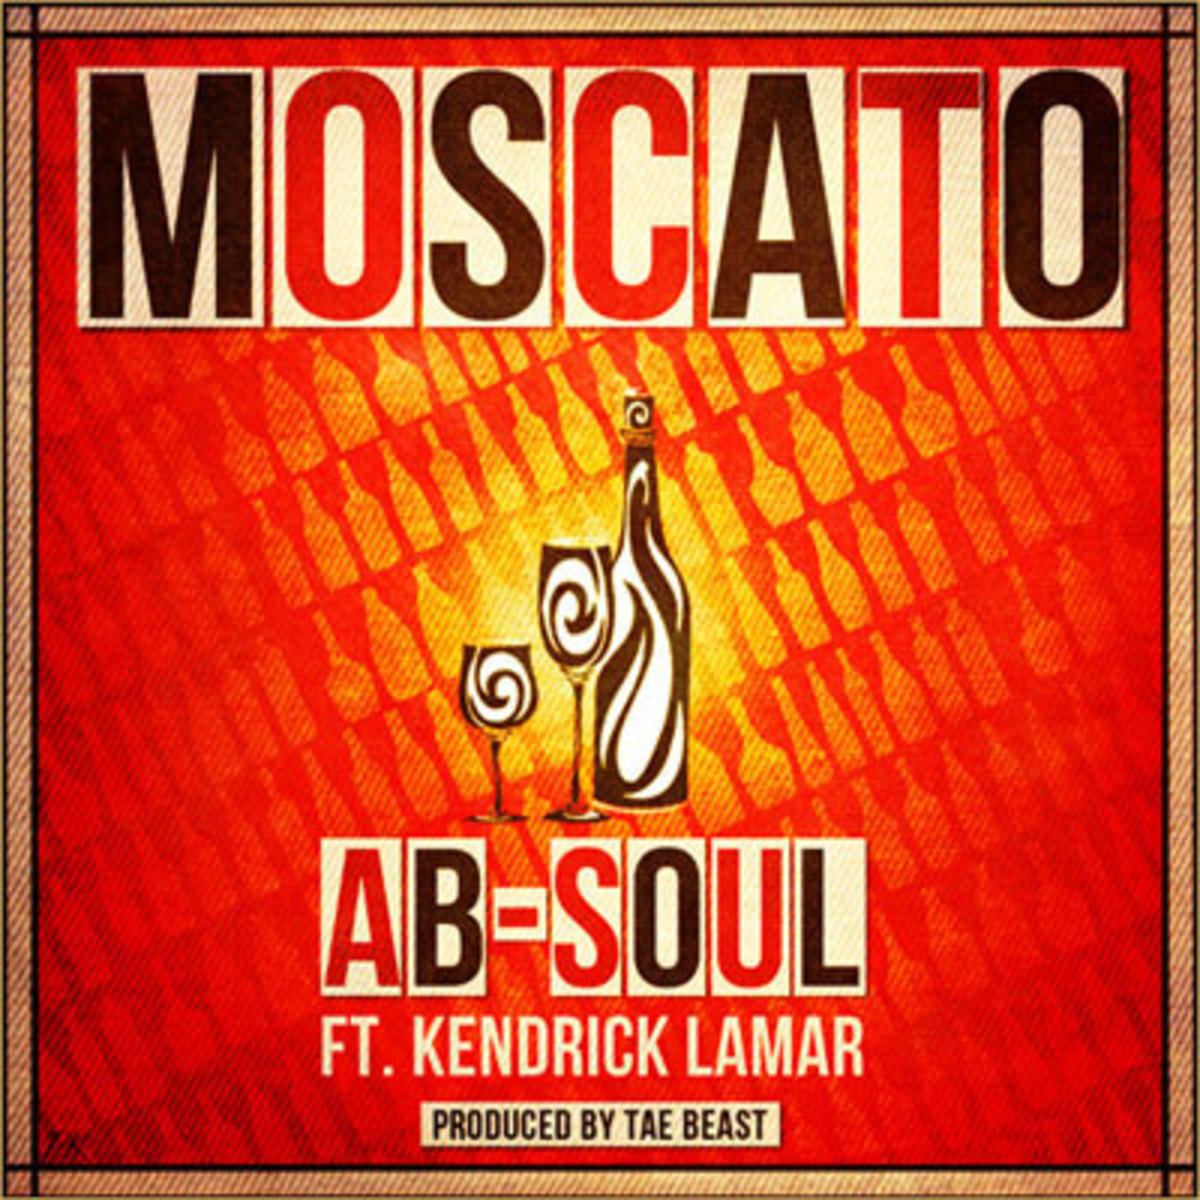 absoul-moscato.jpg